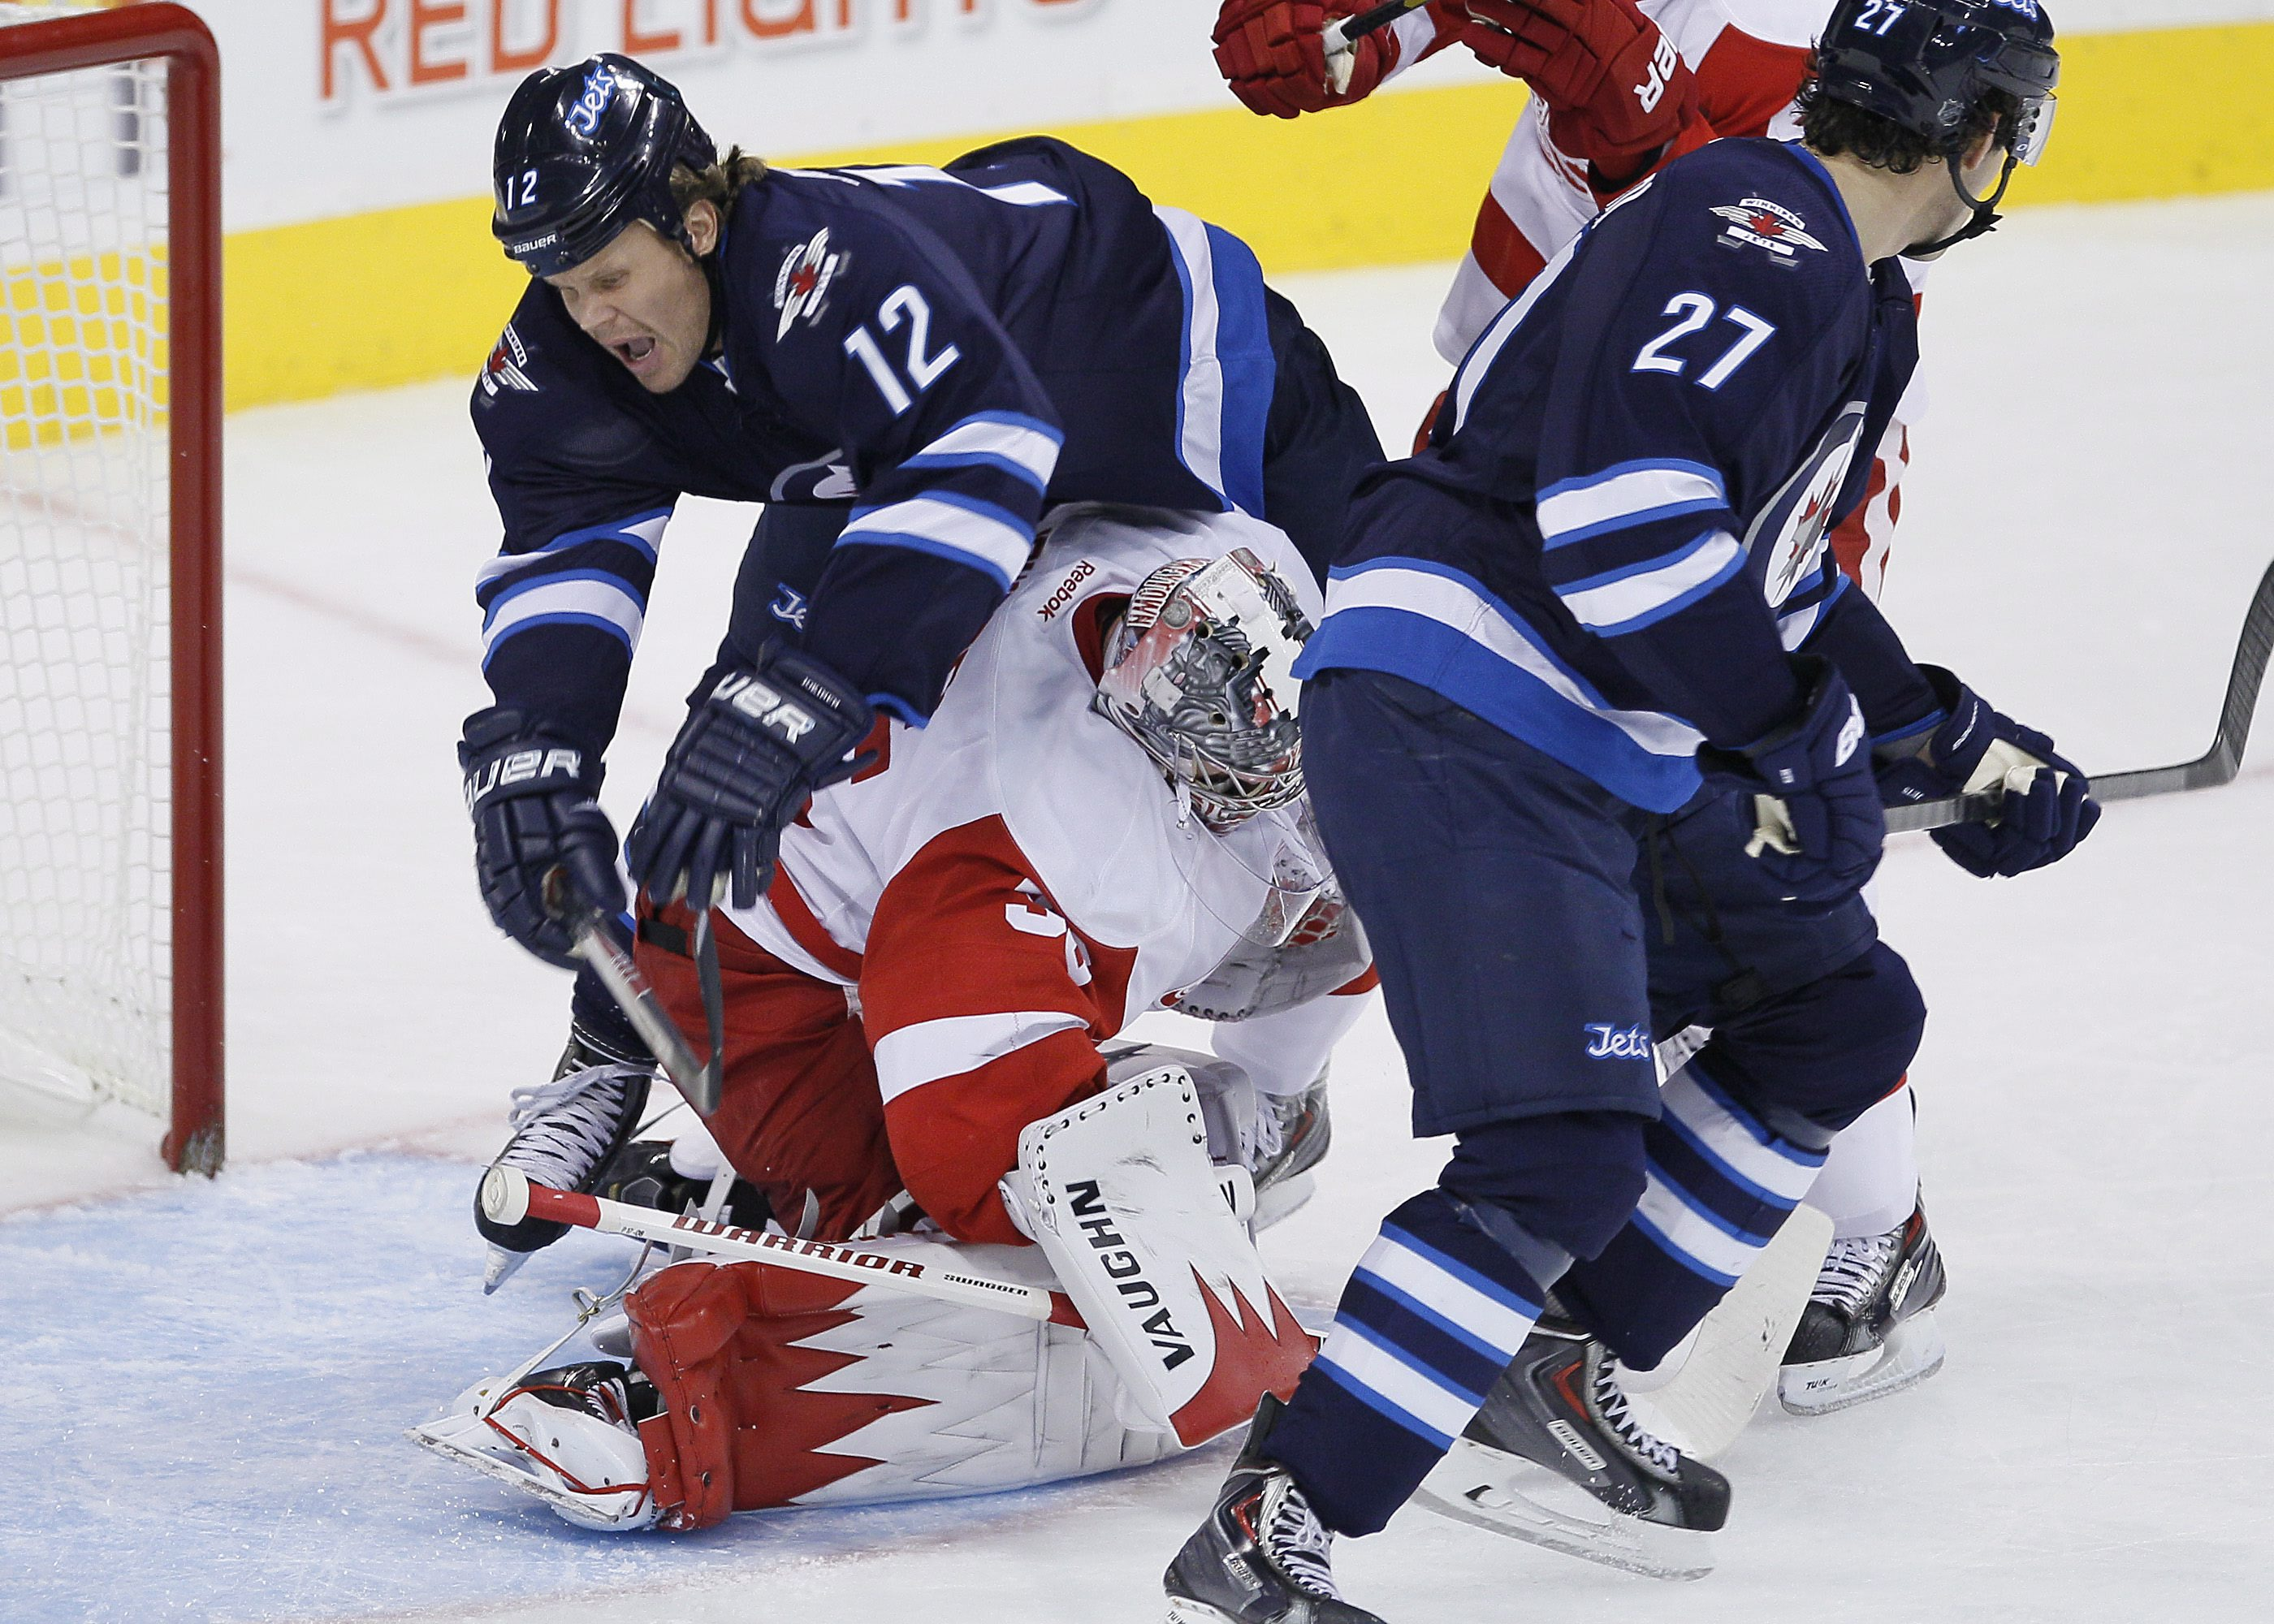 Winnipeg Jets' Olli Jokinen (12) goes over the top of Detroit Red Wings' goaltender Jimmy Howard (35) during first period NHL action in Winnipeg on Monday, Nov. 4, 2013